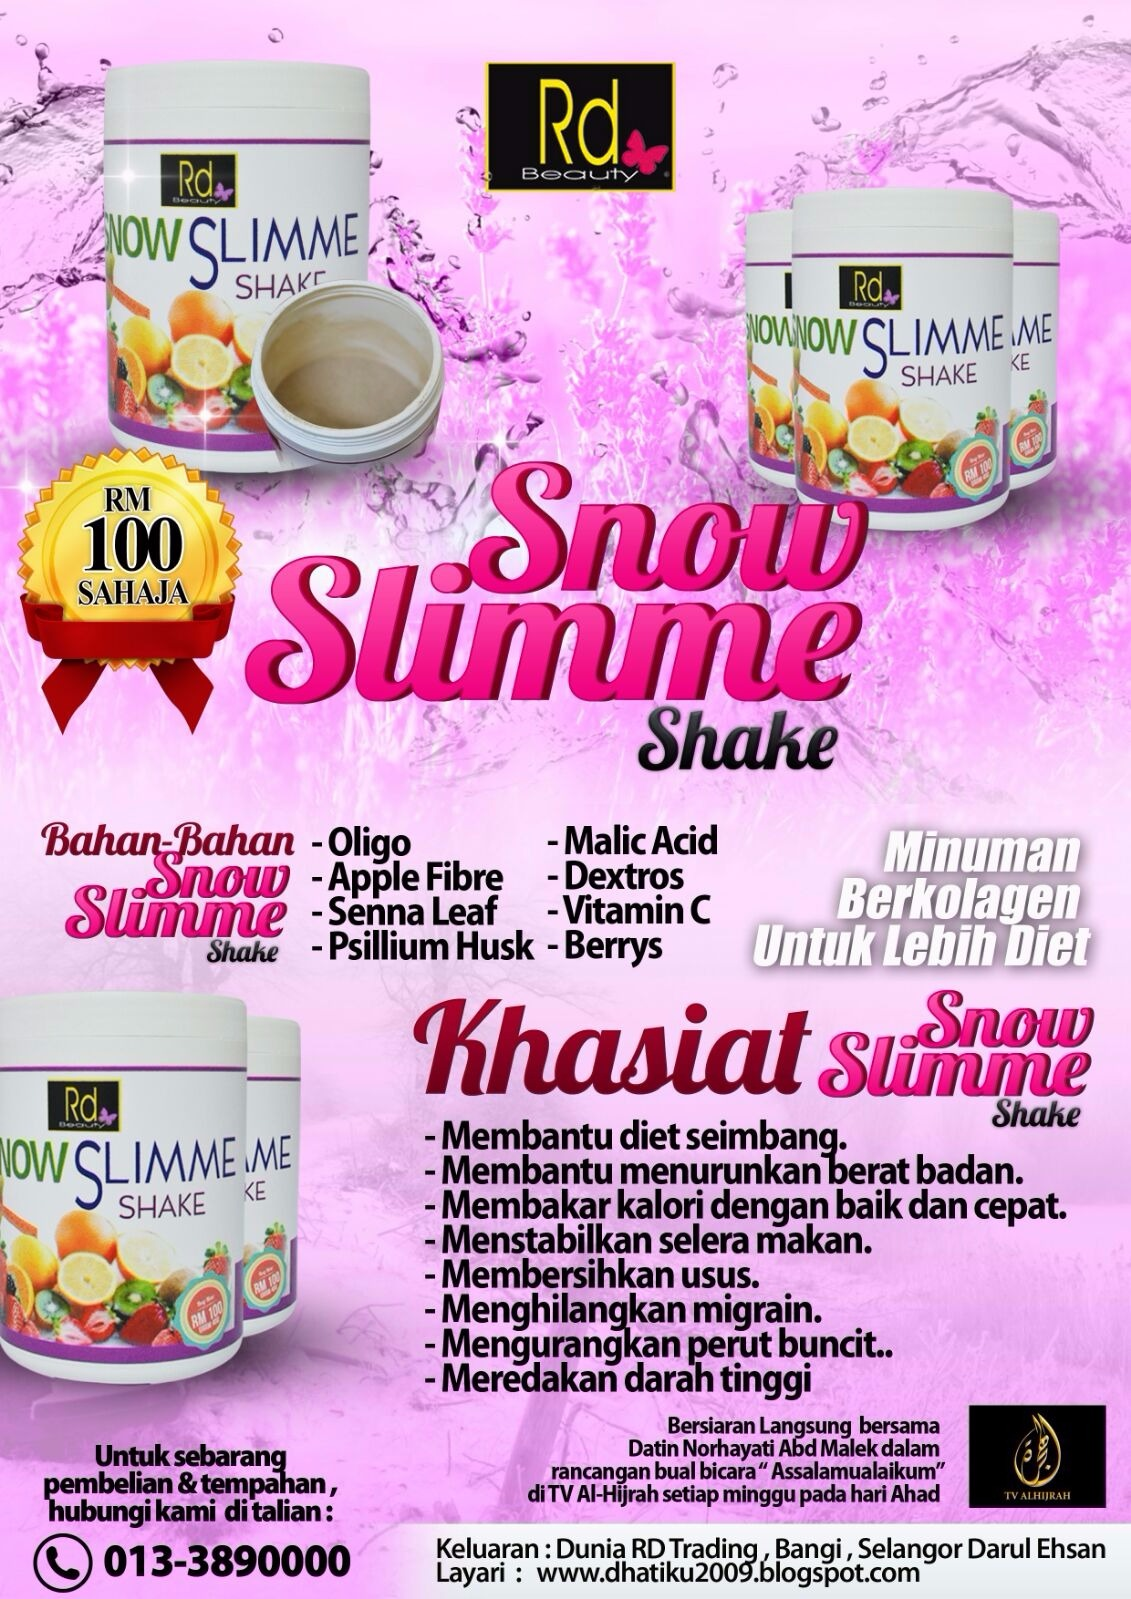 SNOWSLIMME SHAKE